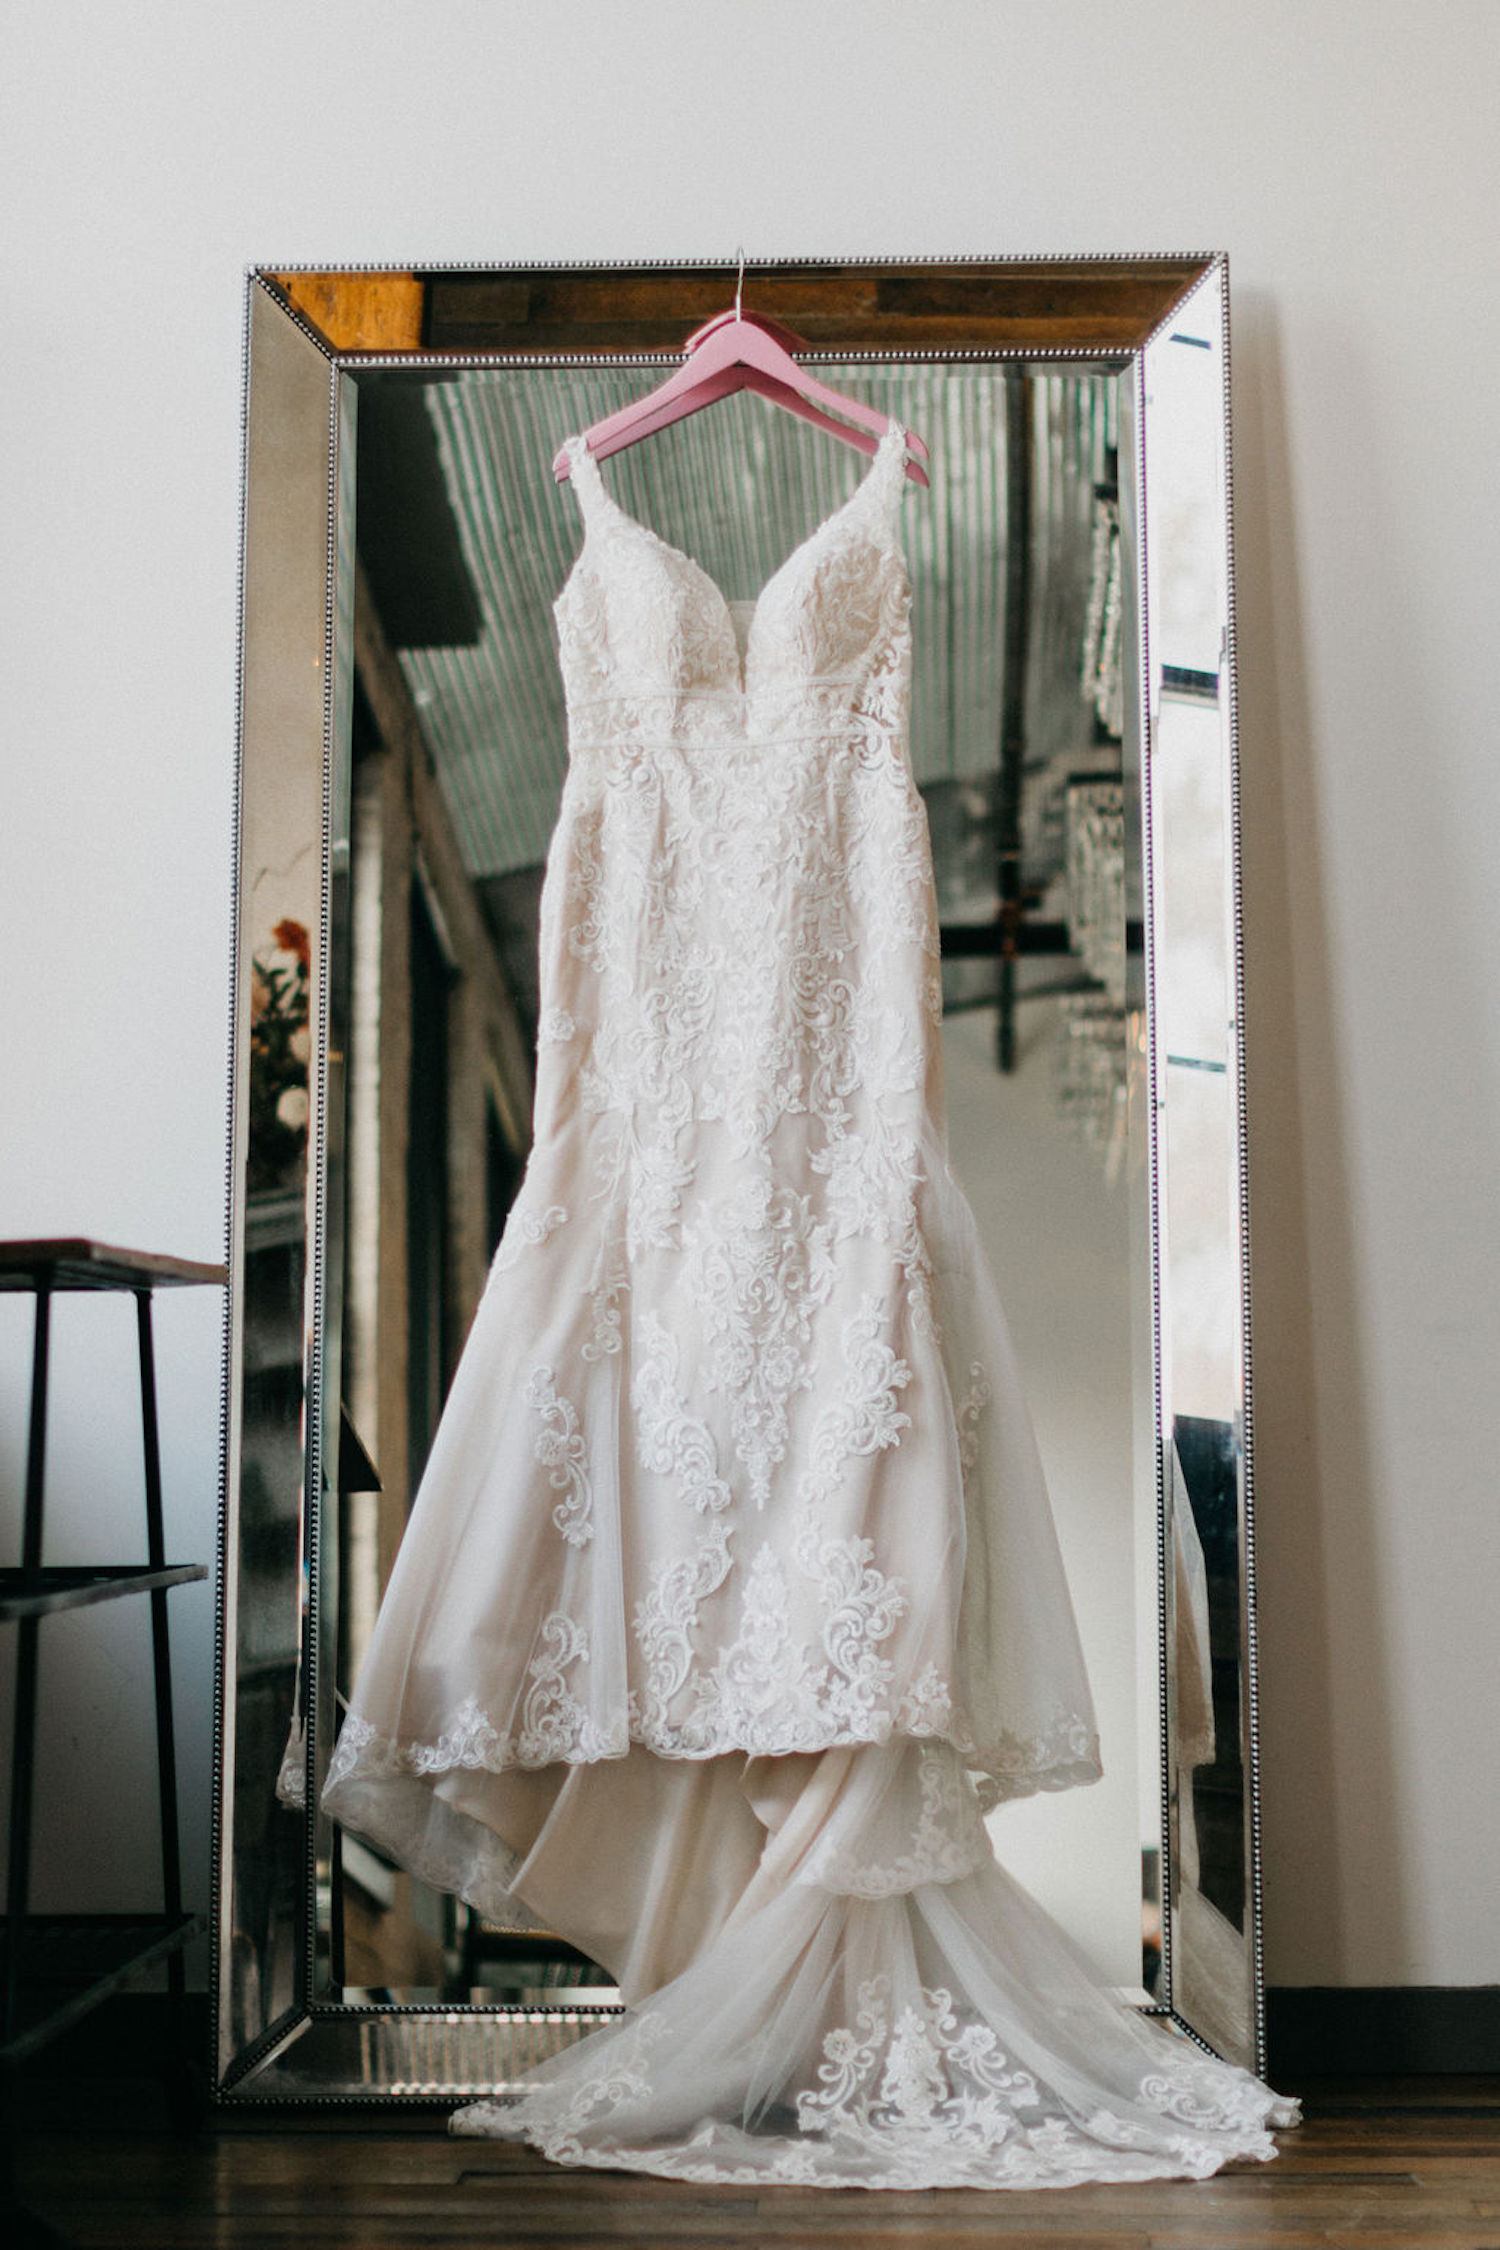 Wedding gown hanging in front of mirror